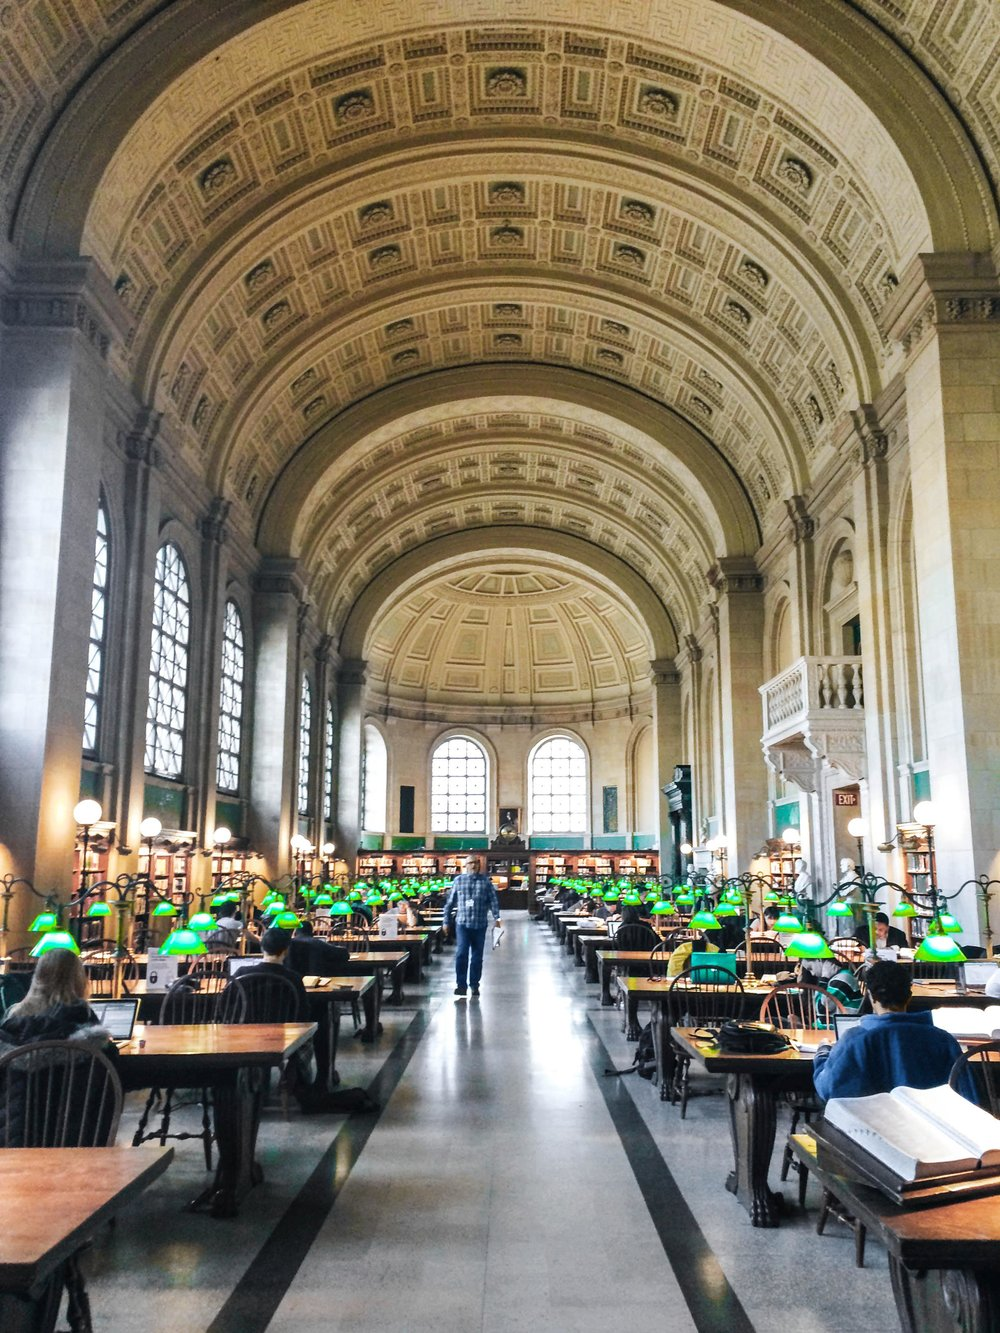 Top reasons to visit Boston and things to see The Boston Public Library